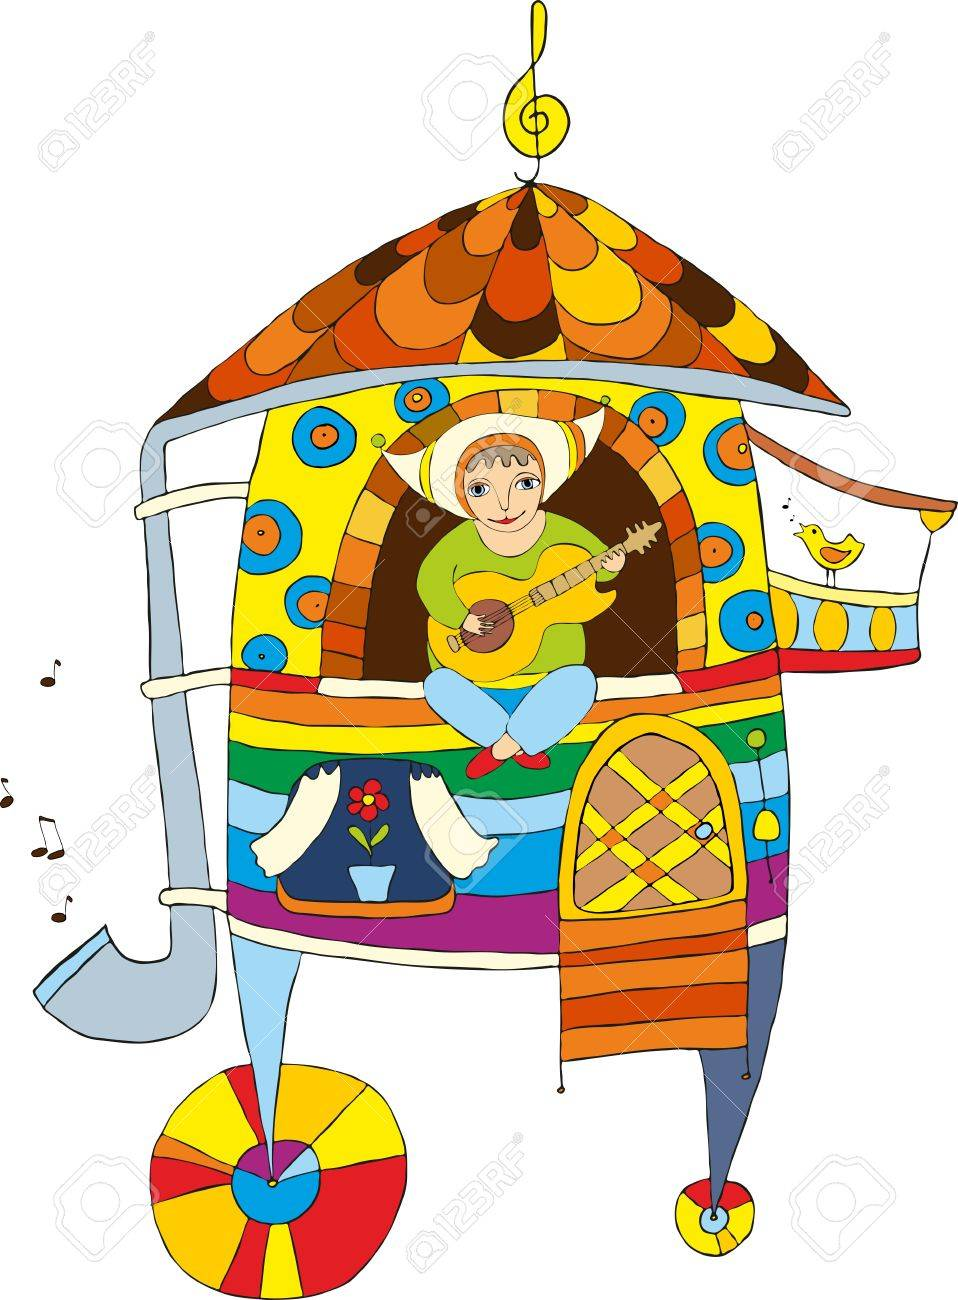 Fantastic mobile house with the boy playing a guitar Stock Vector - 13312461